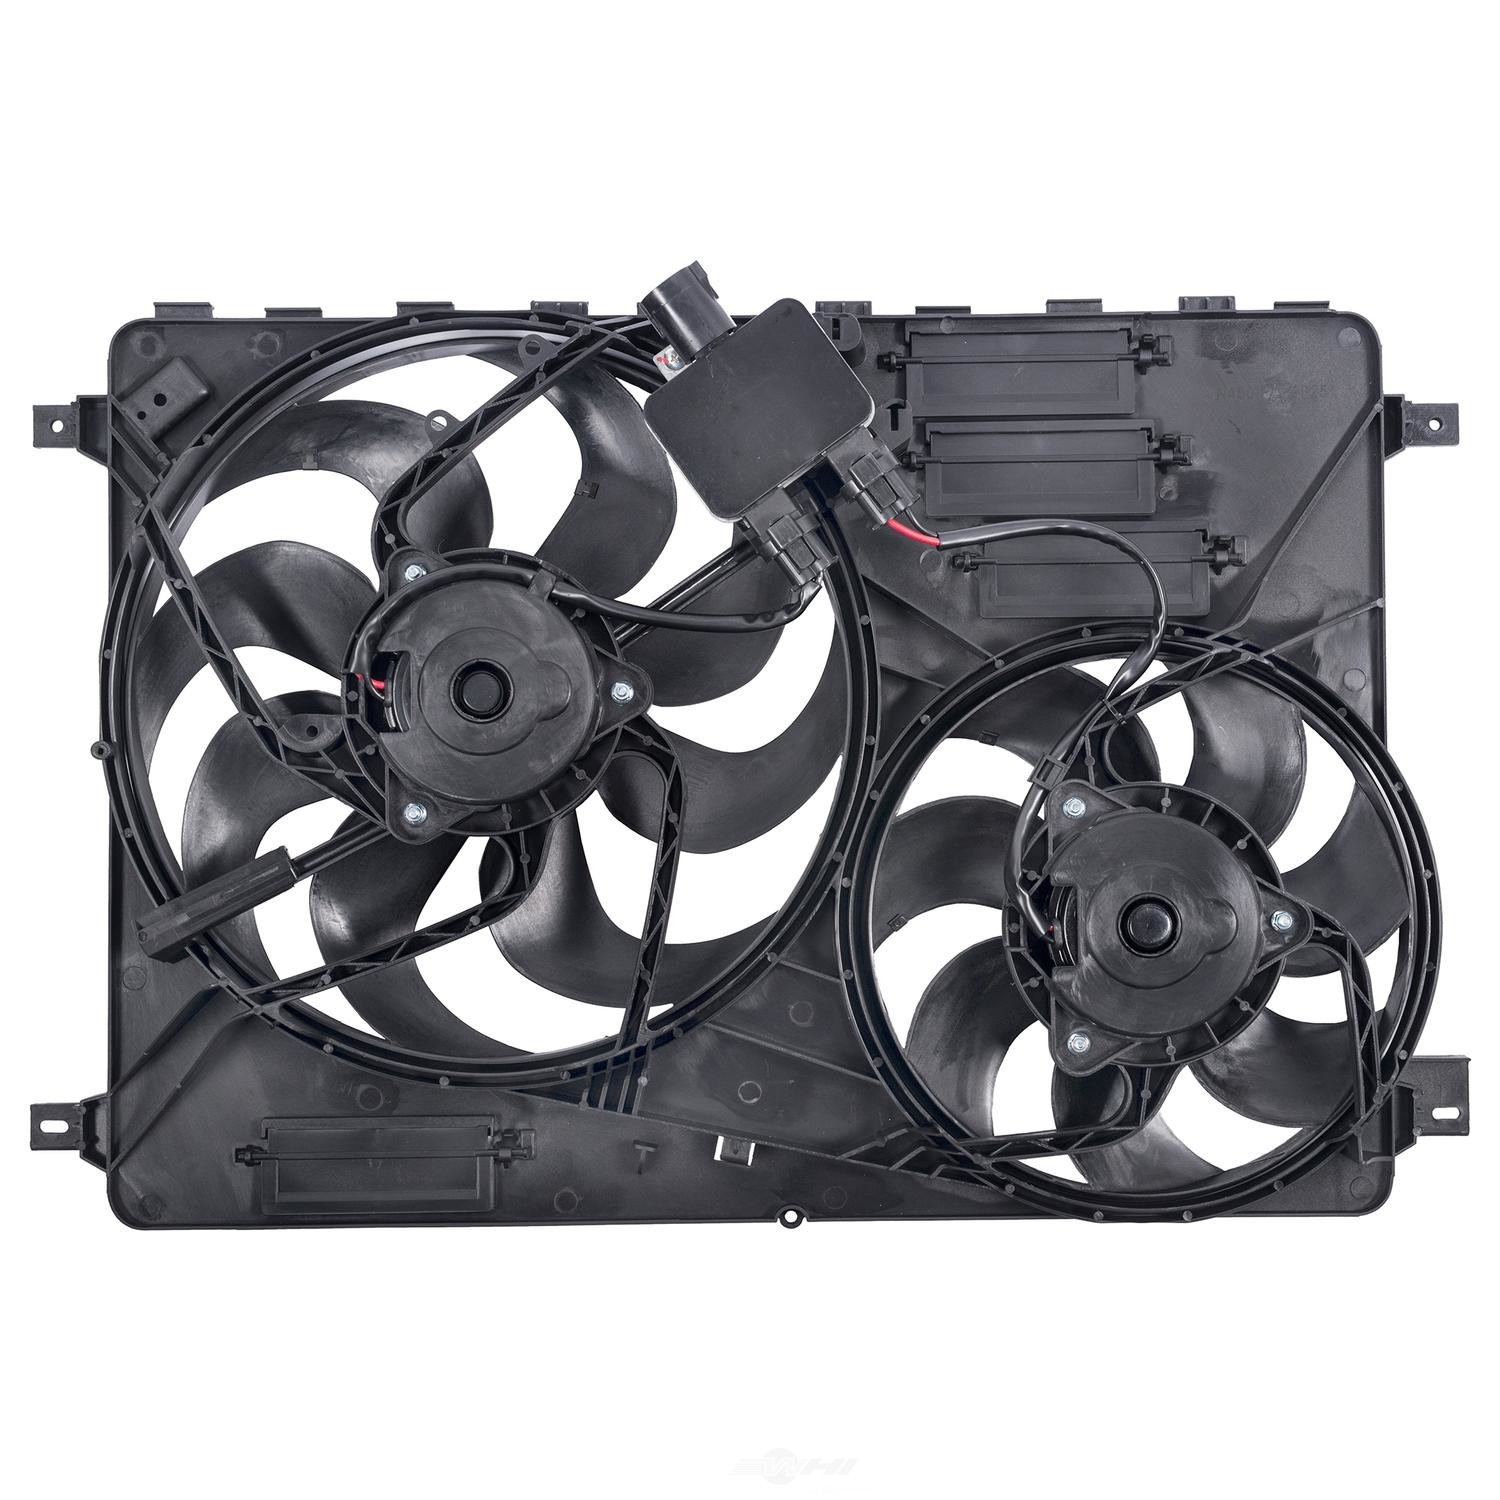 SPECTRA PREMIUM IND, INC. - Dual Radiator and Condenser Fan Assembly - SPC CF28003